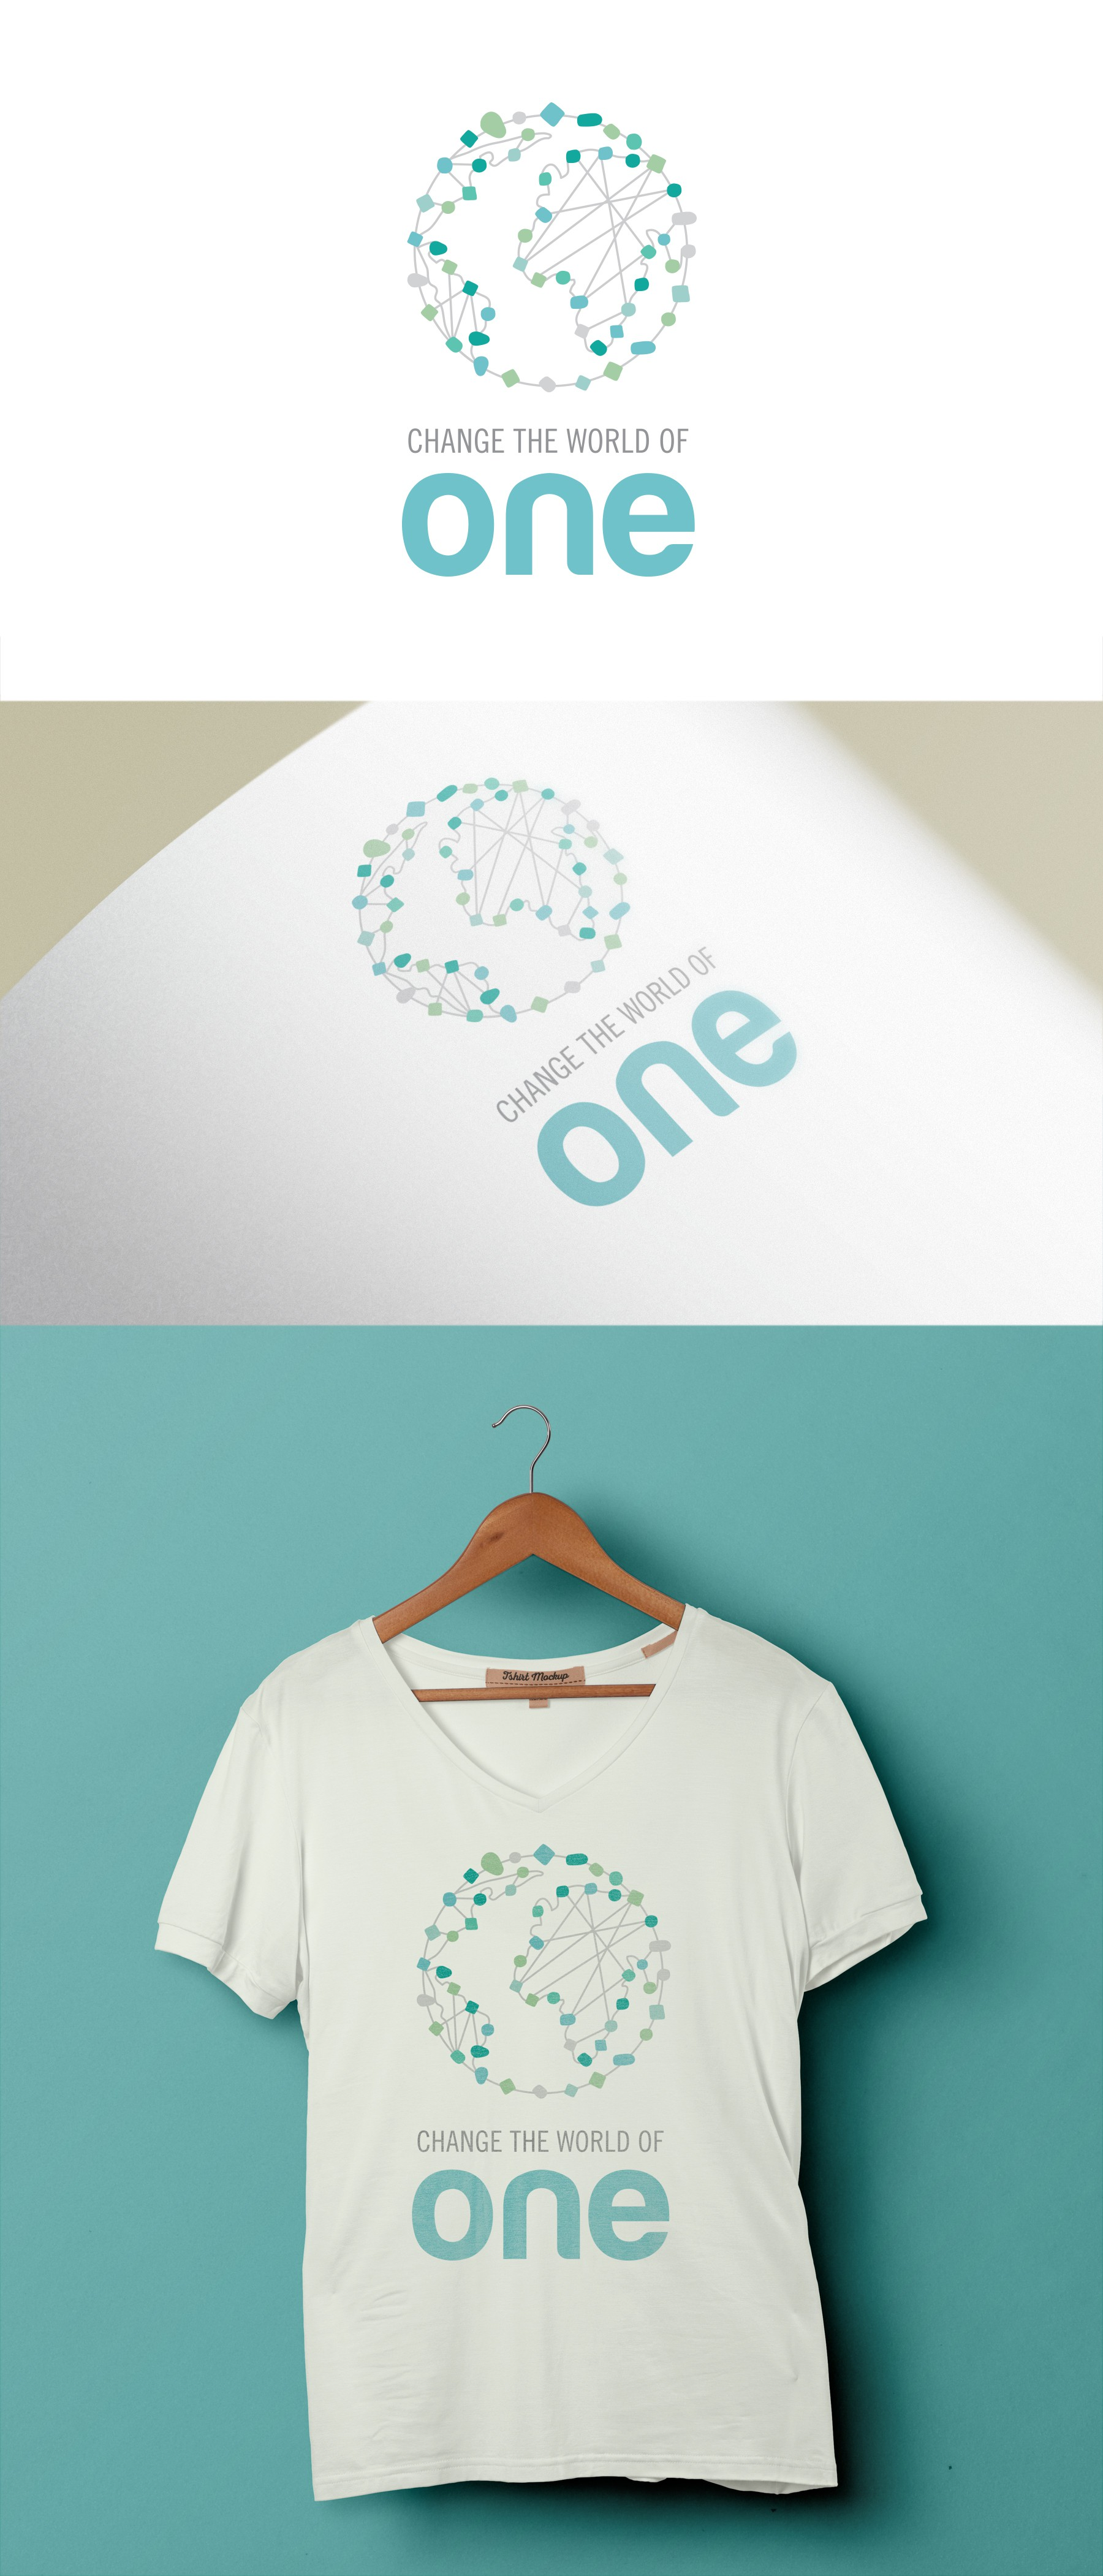 Create a design that will motivate people to change the world by connecting with and helping one person/animal at a time